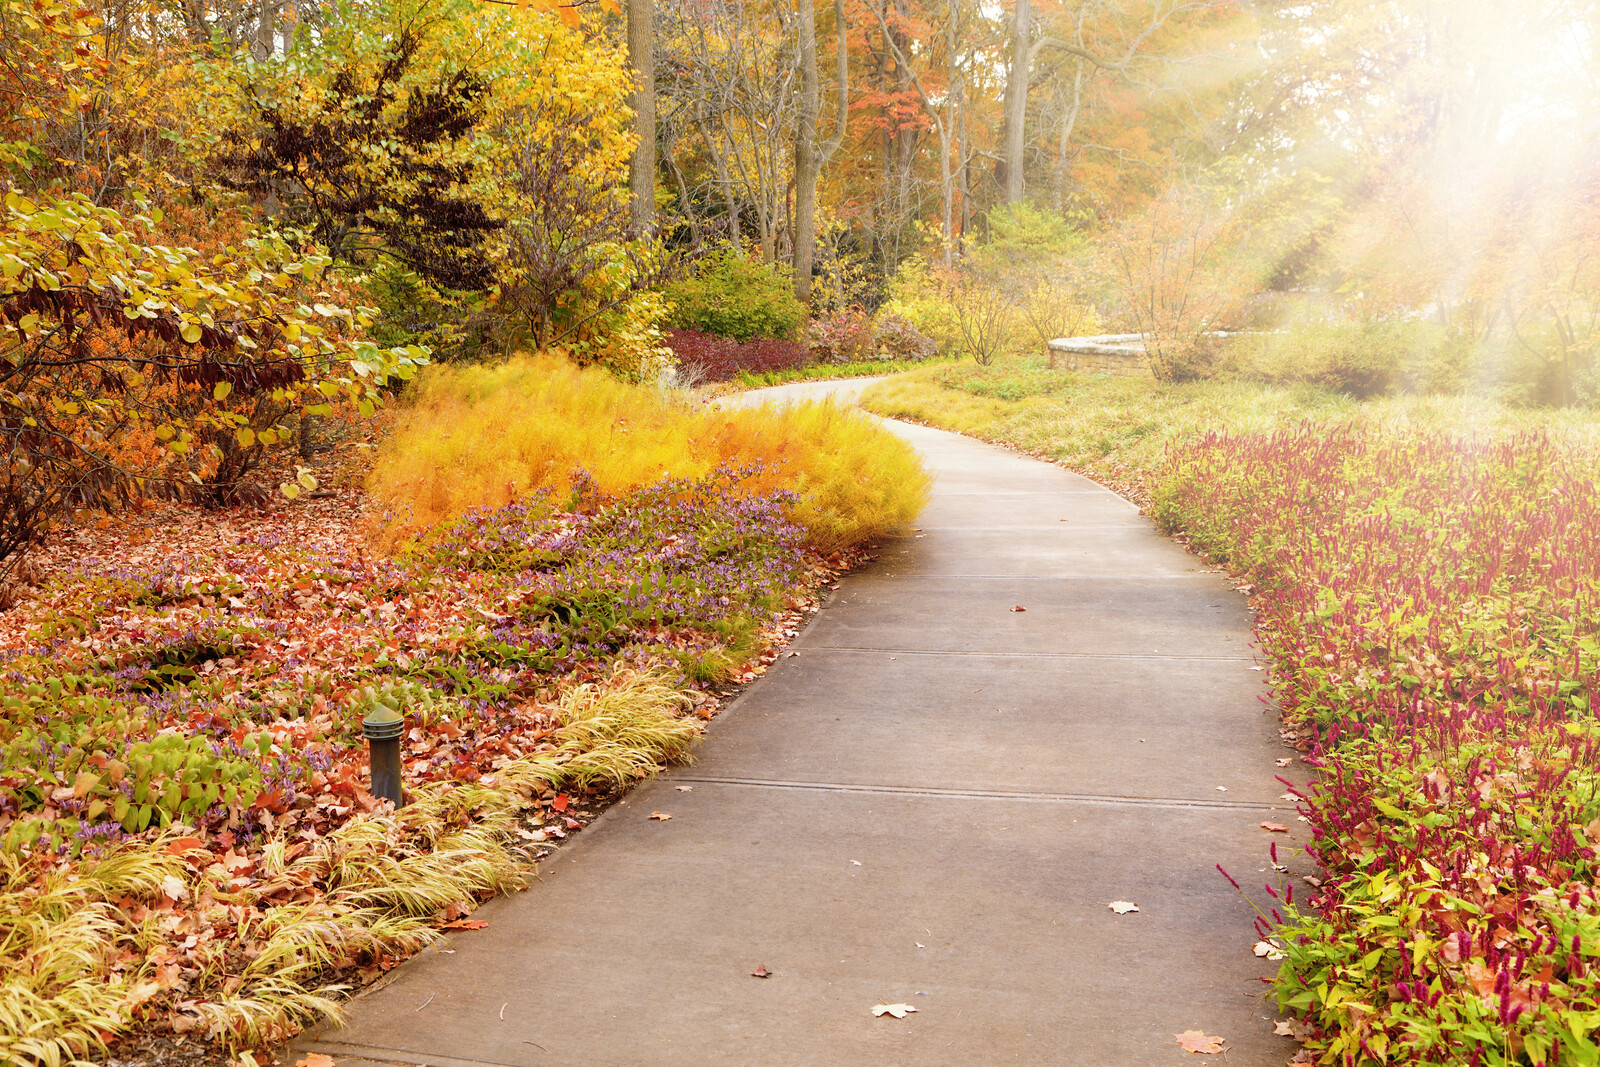 Places to Retire in Indiana - Walkway in an Indianapolis park in the fall with soft autumn colors with trees and perennials lining the path and sunbeams lighting the way